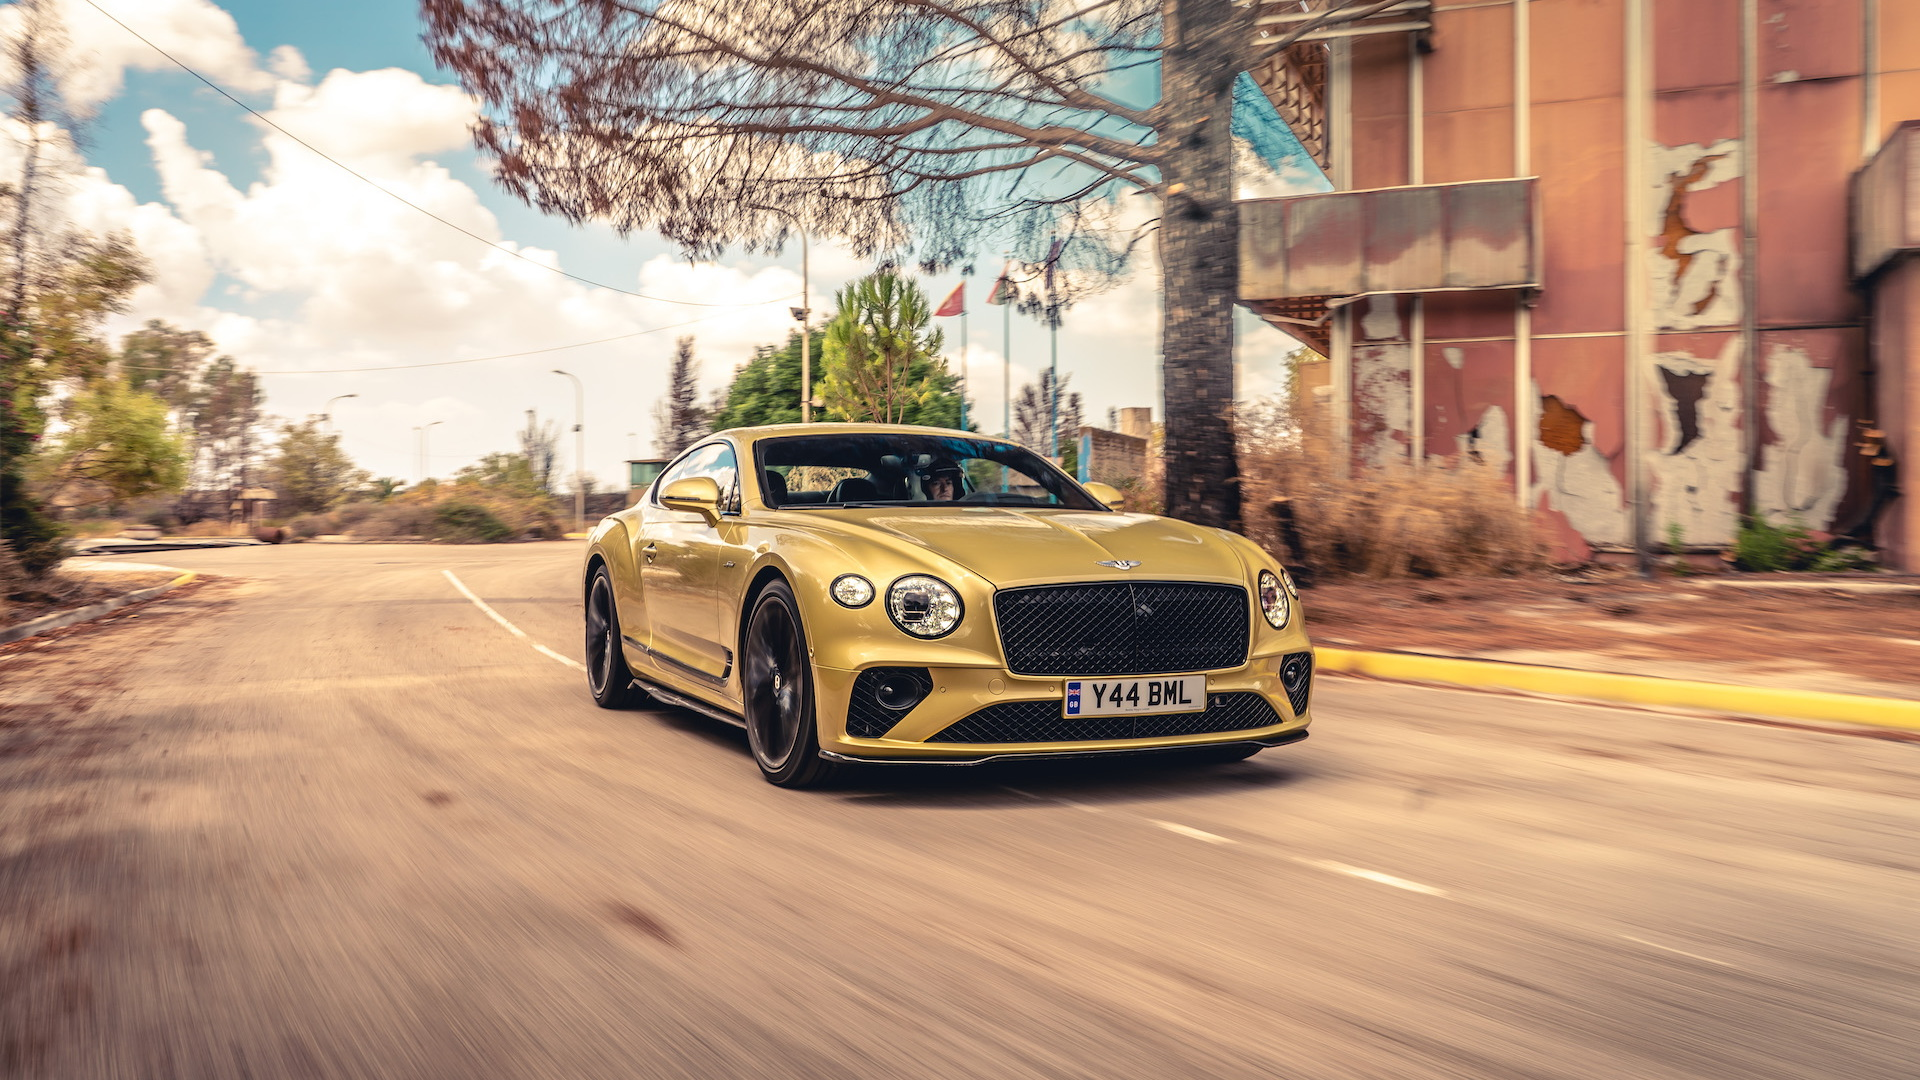 2022 Bentley Continental GT Speed at Comiso